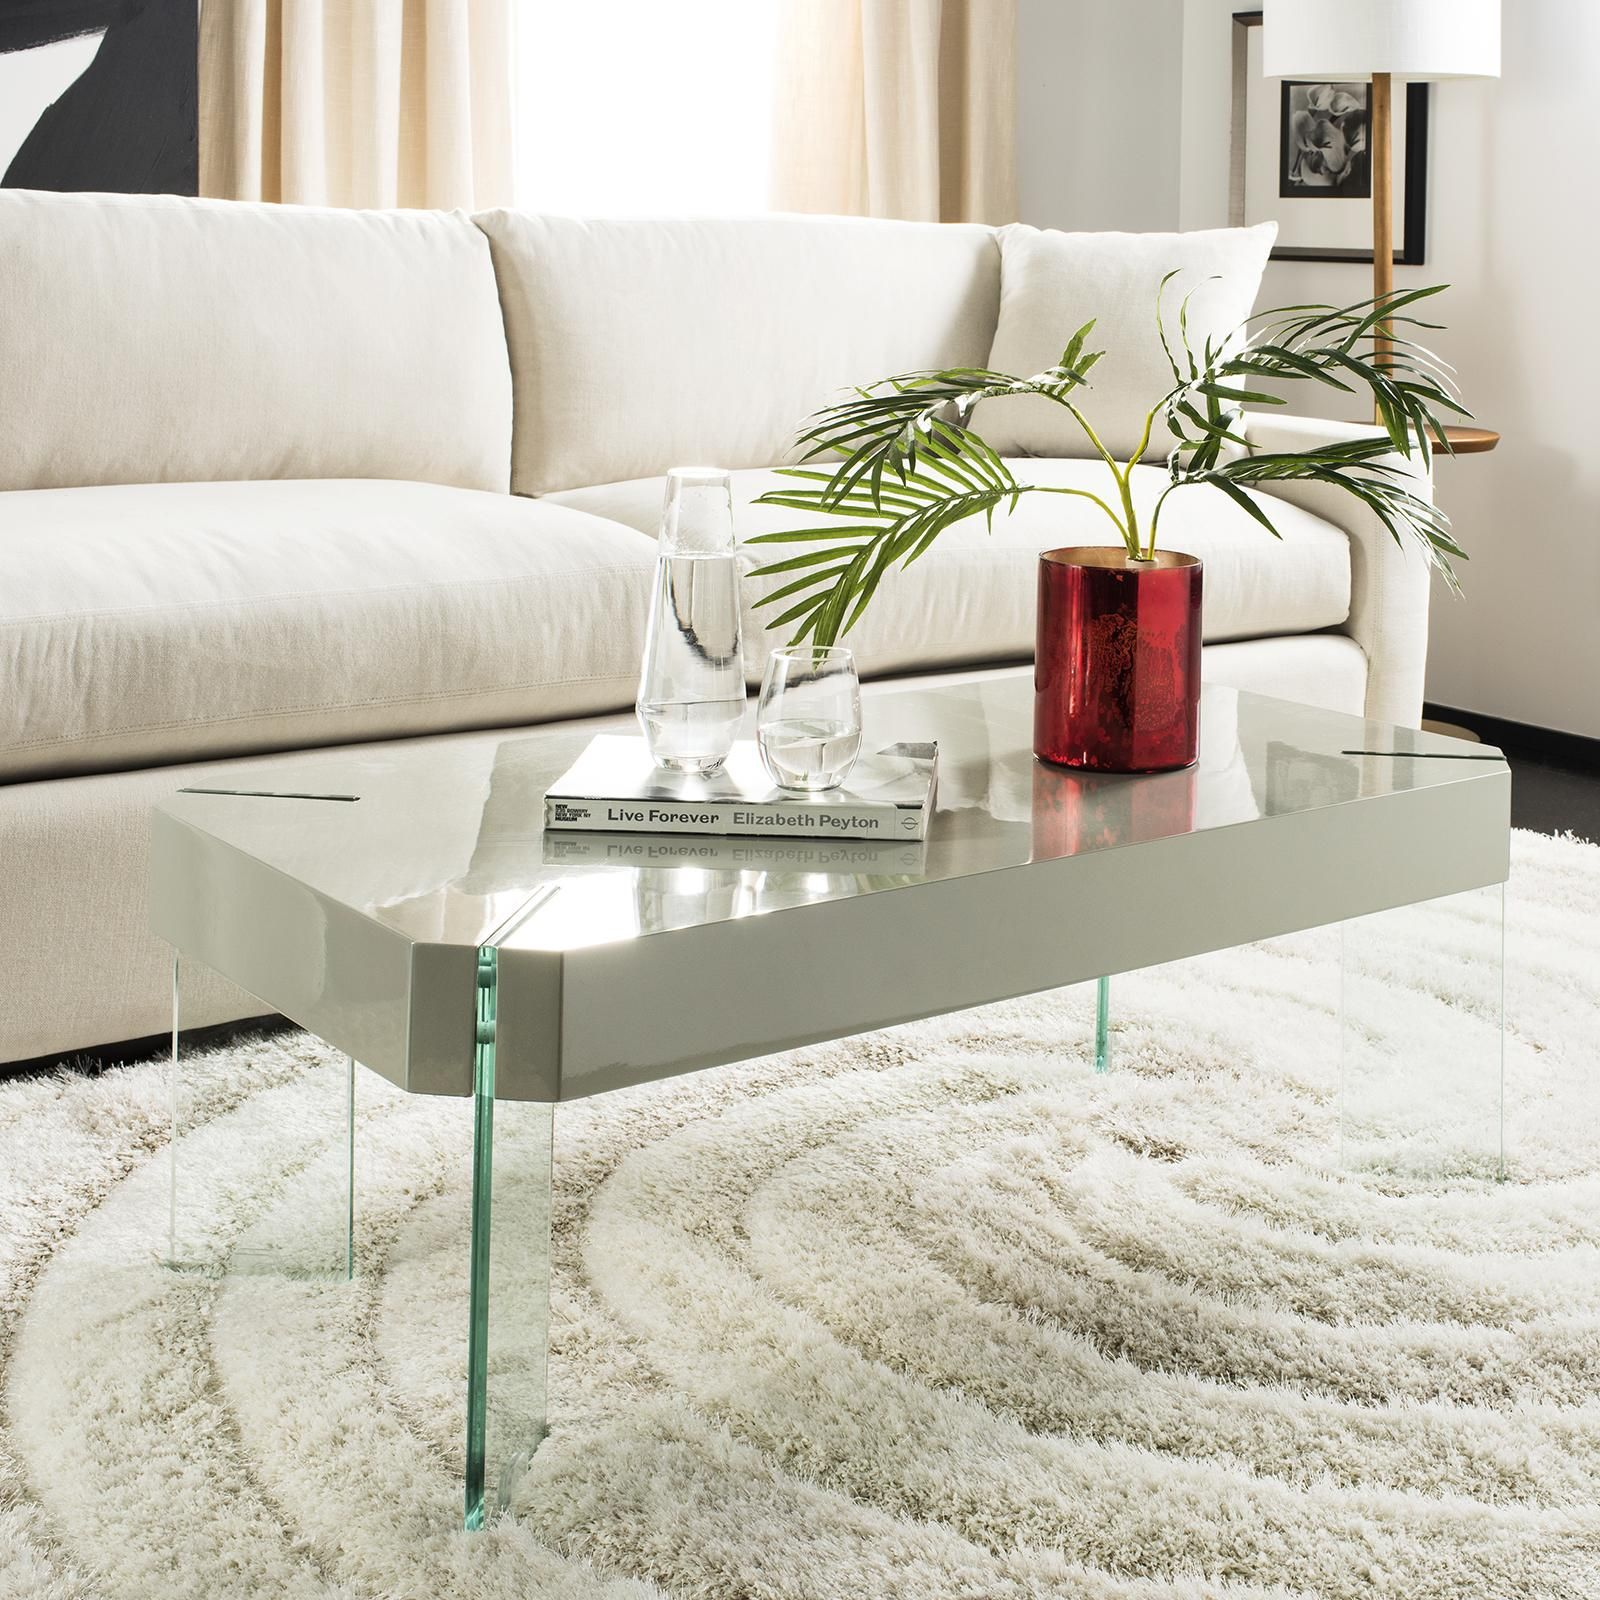 Safavieh Katelyn Contemporary Coffee Table In 2020 Coffee Table Grey Wood Coffee Table Coffee Table Grey [ 1600 x 1600 Pixel ]